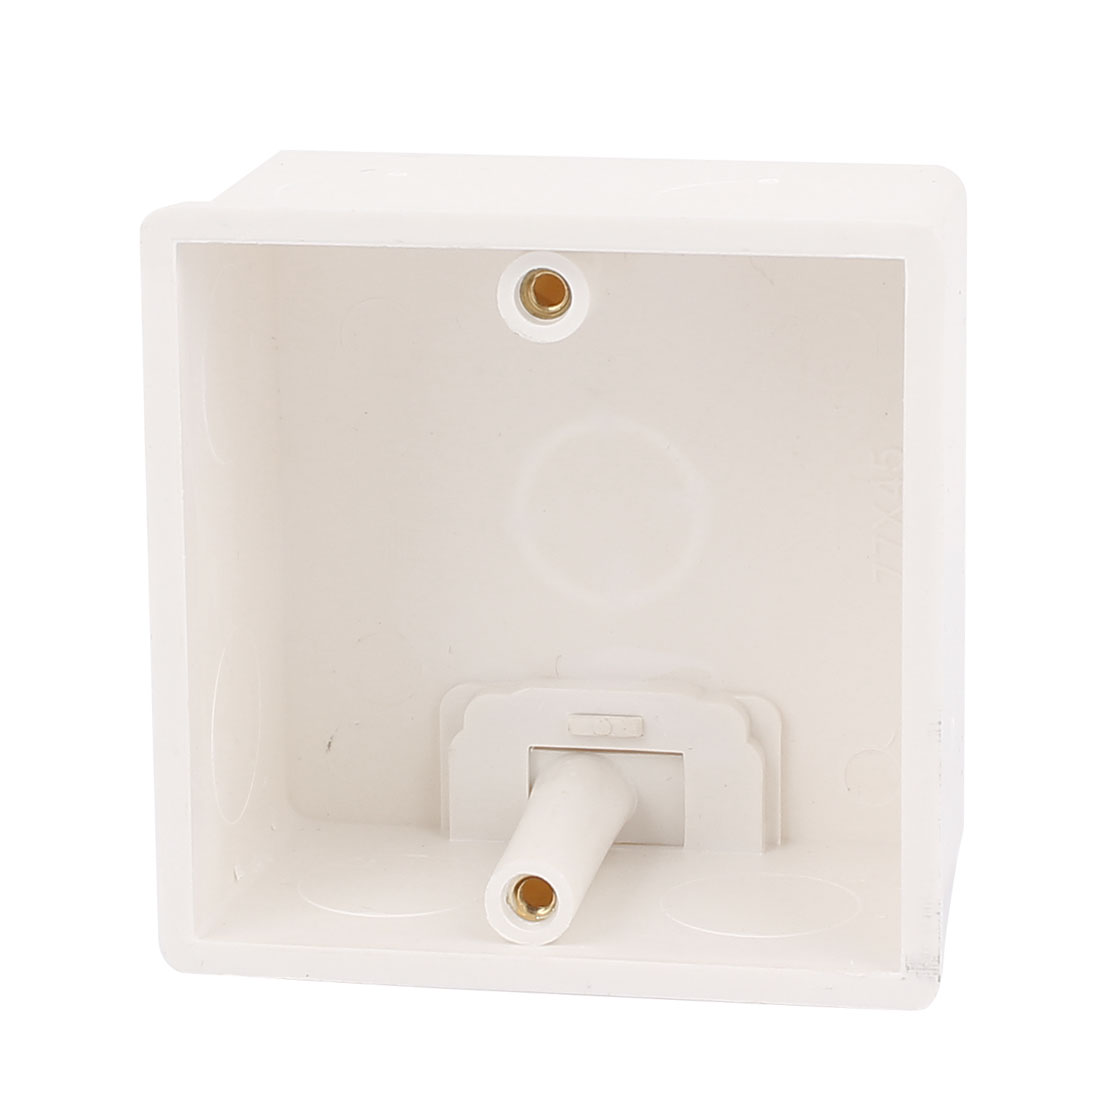 77mmx77mmx43mm Square Shape Wall Mounted Light Plastic Switch Junction Box